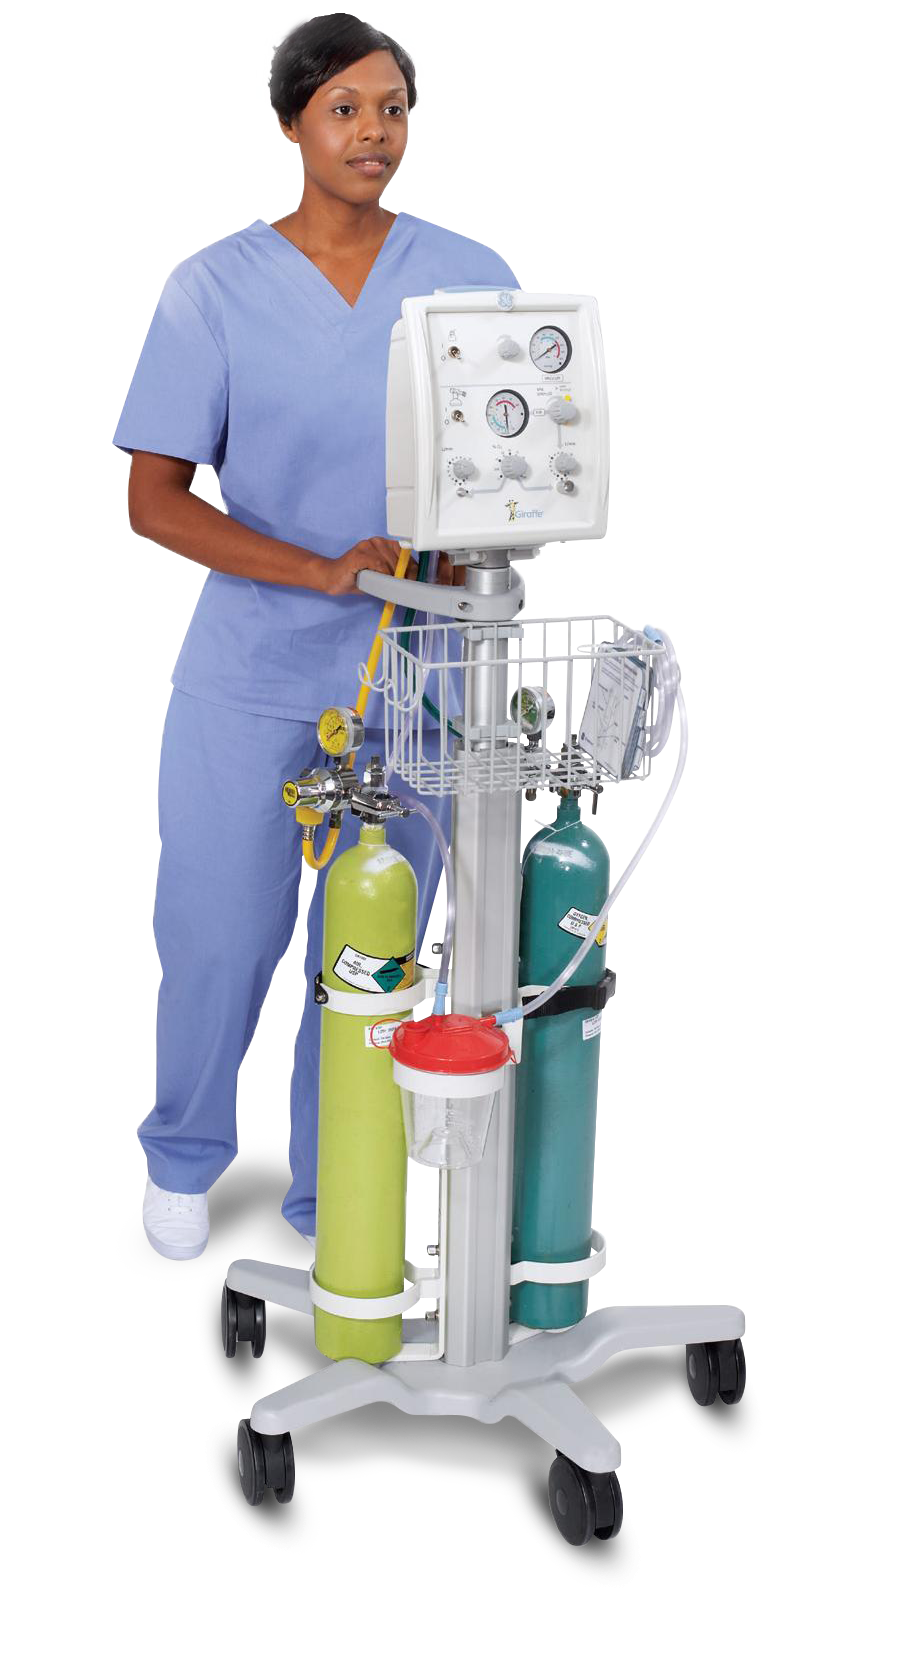 Nurse with Giraffe Stand-alone Infant Resuscitation System.